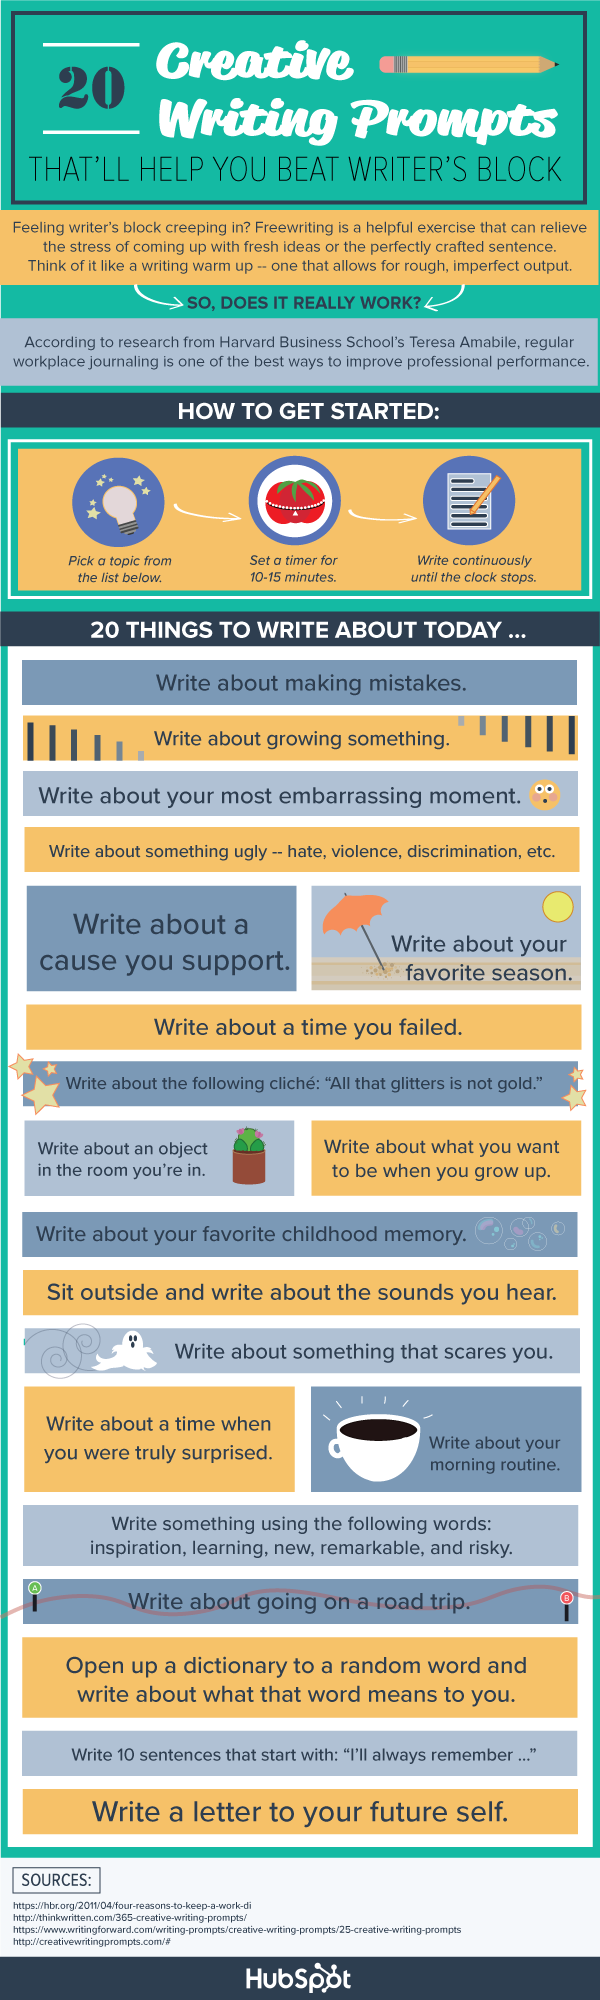 Creative-Writing-Prompts-Infographic